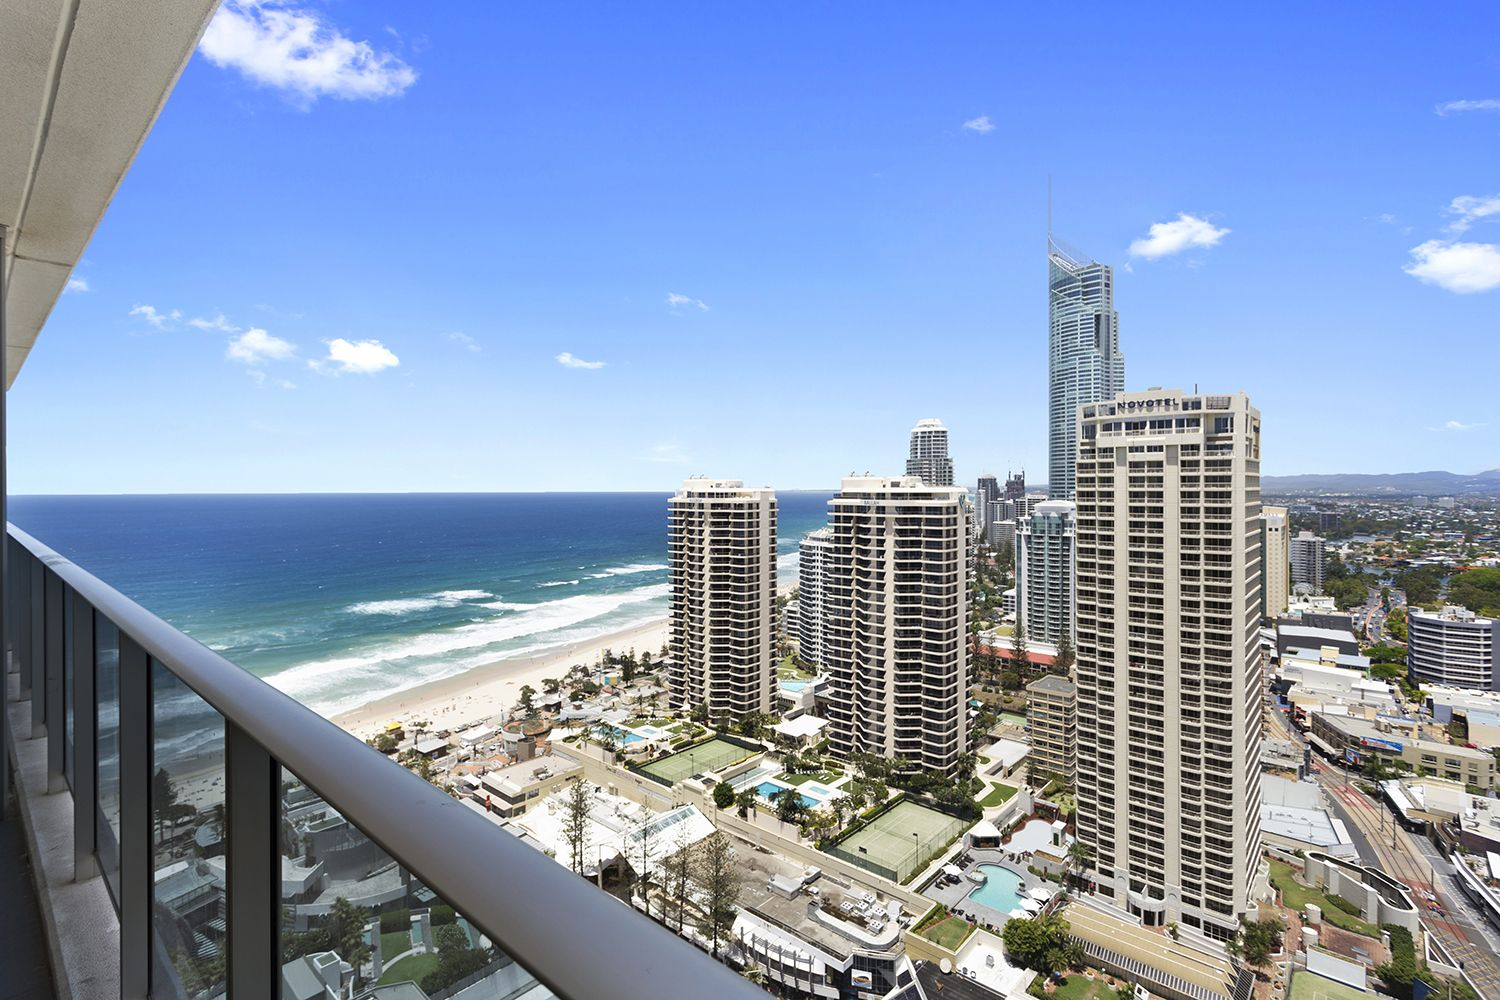 3113 'H-Residences' Surfers Paradise Blvd, Surfers Paradise QLD 4217, Image 0